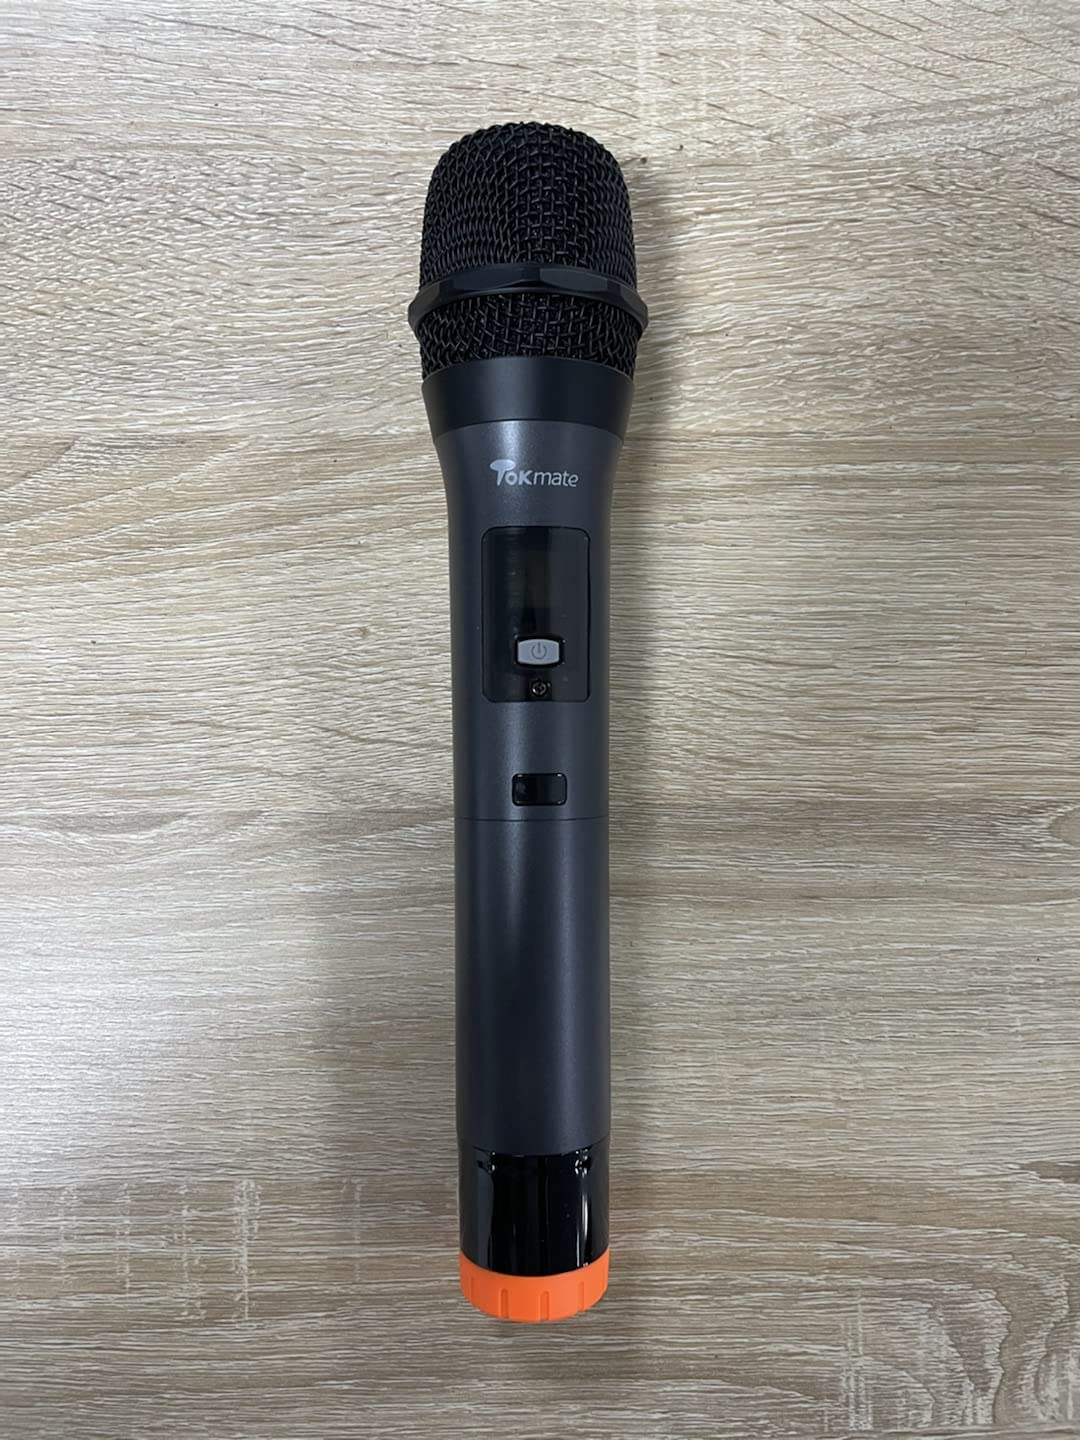 Japan Maker Cheap mail order shopping New Tokmate Microphone insturment